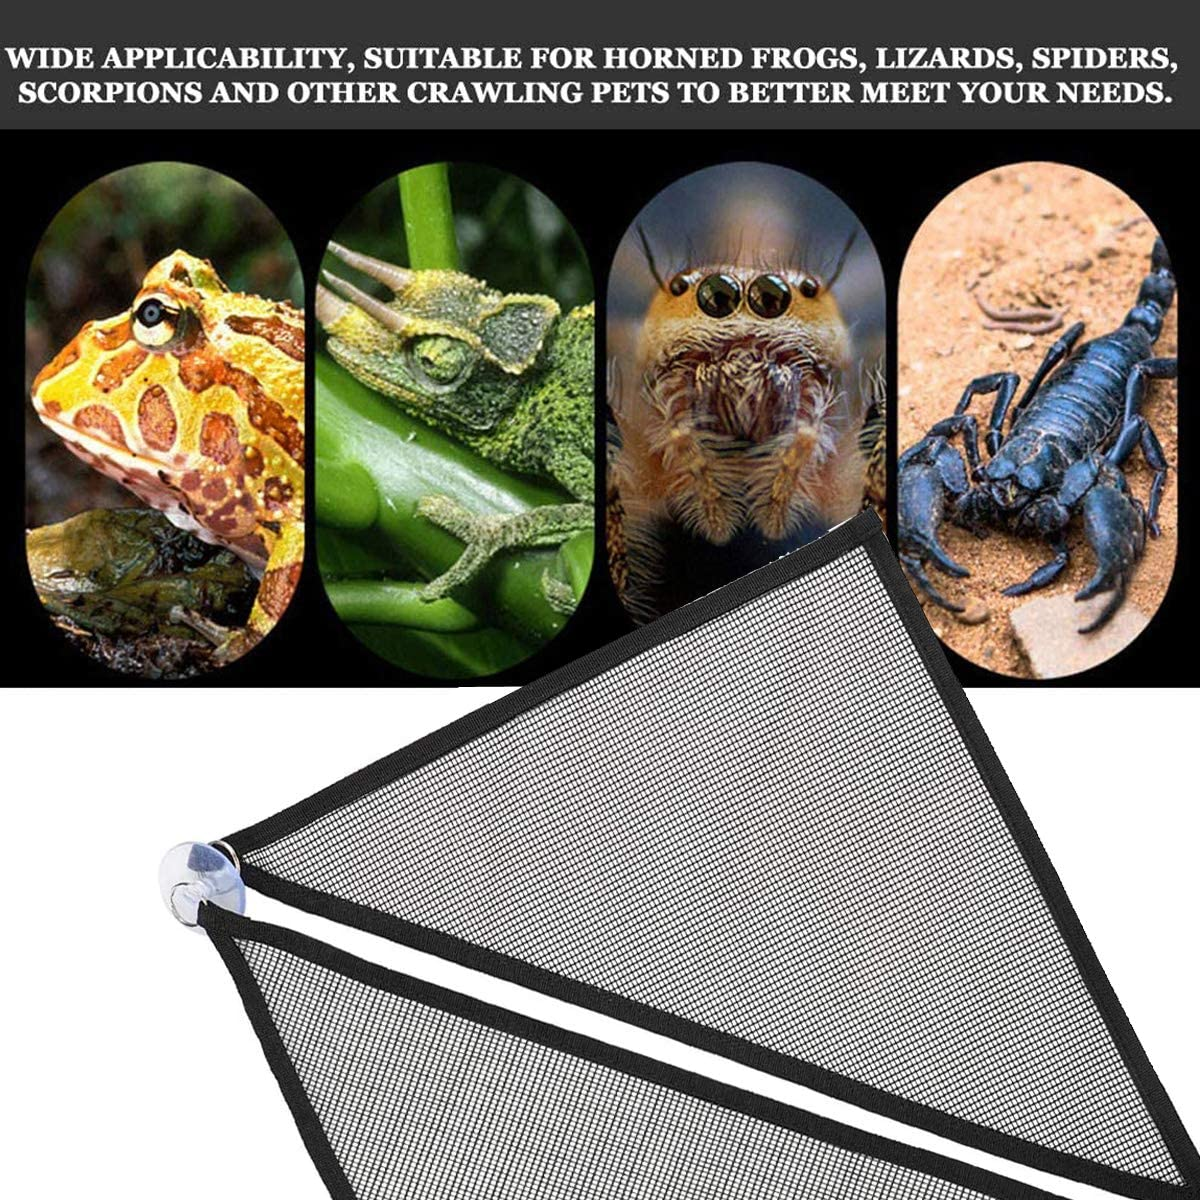 Reptile Hammock Kit Accessories Triangular Hanging Net Breathable Hammock Lounger with Suction Cups Artificial Hanging Vines Plants Reptile Leaves for Bearded Dragon Lizard Chameleon Habitat Black